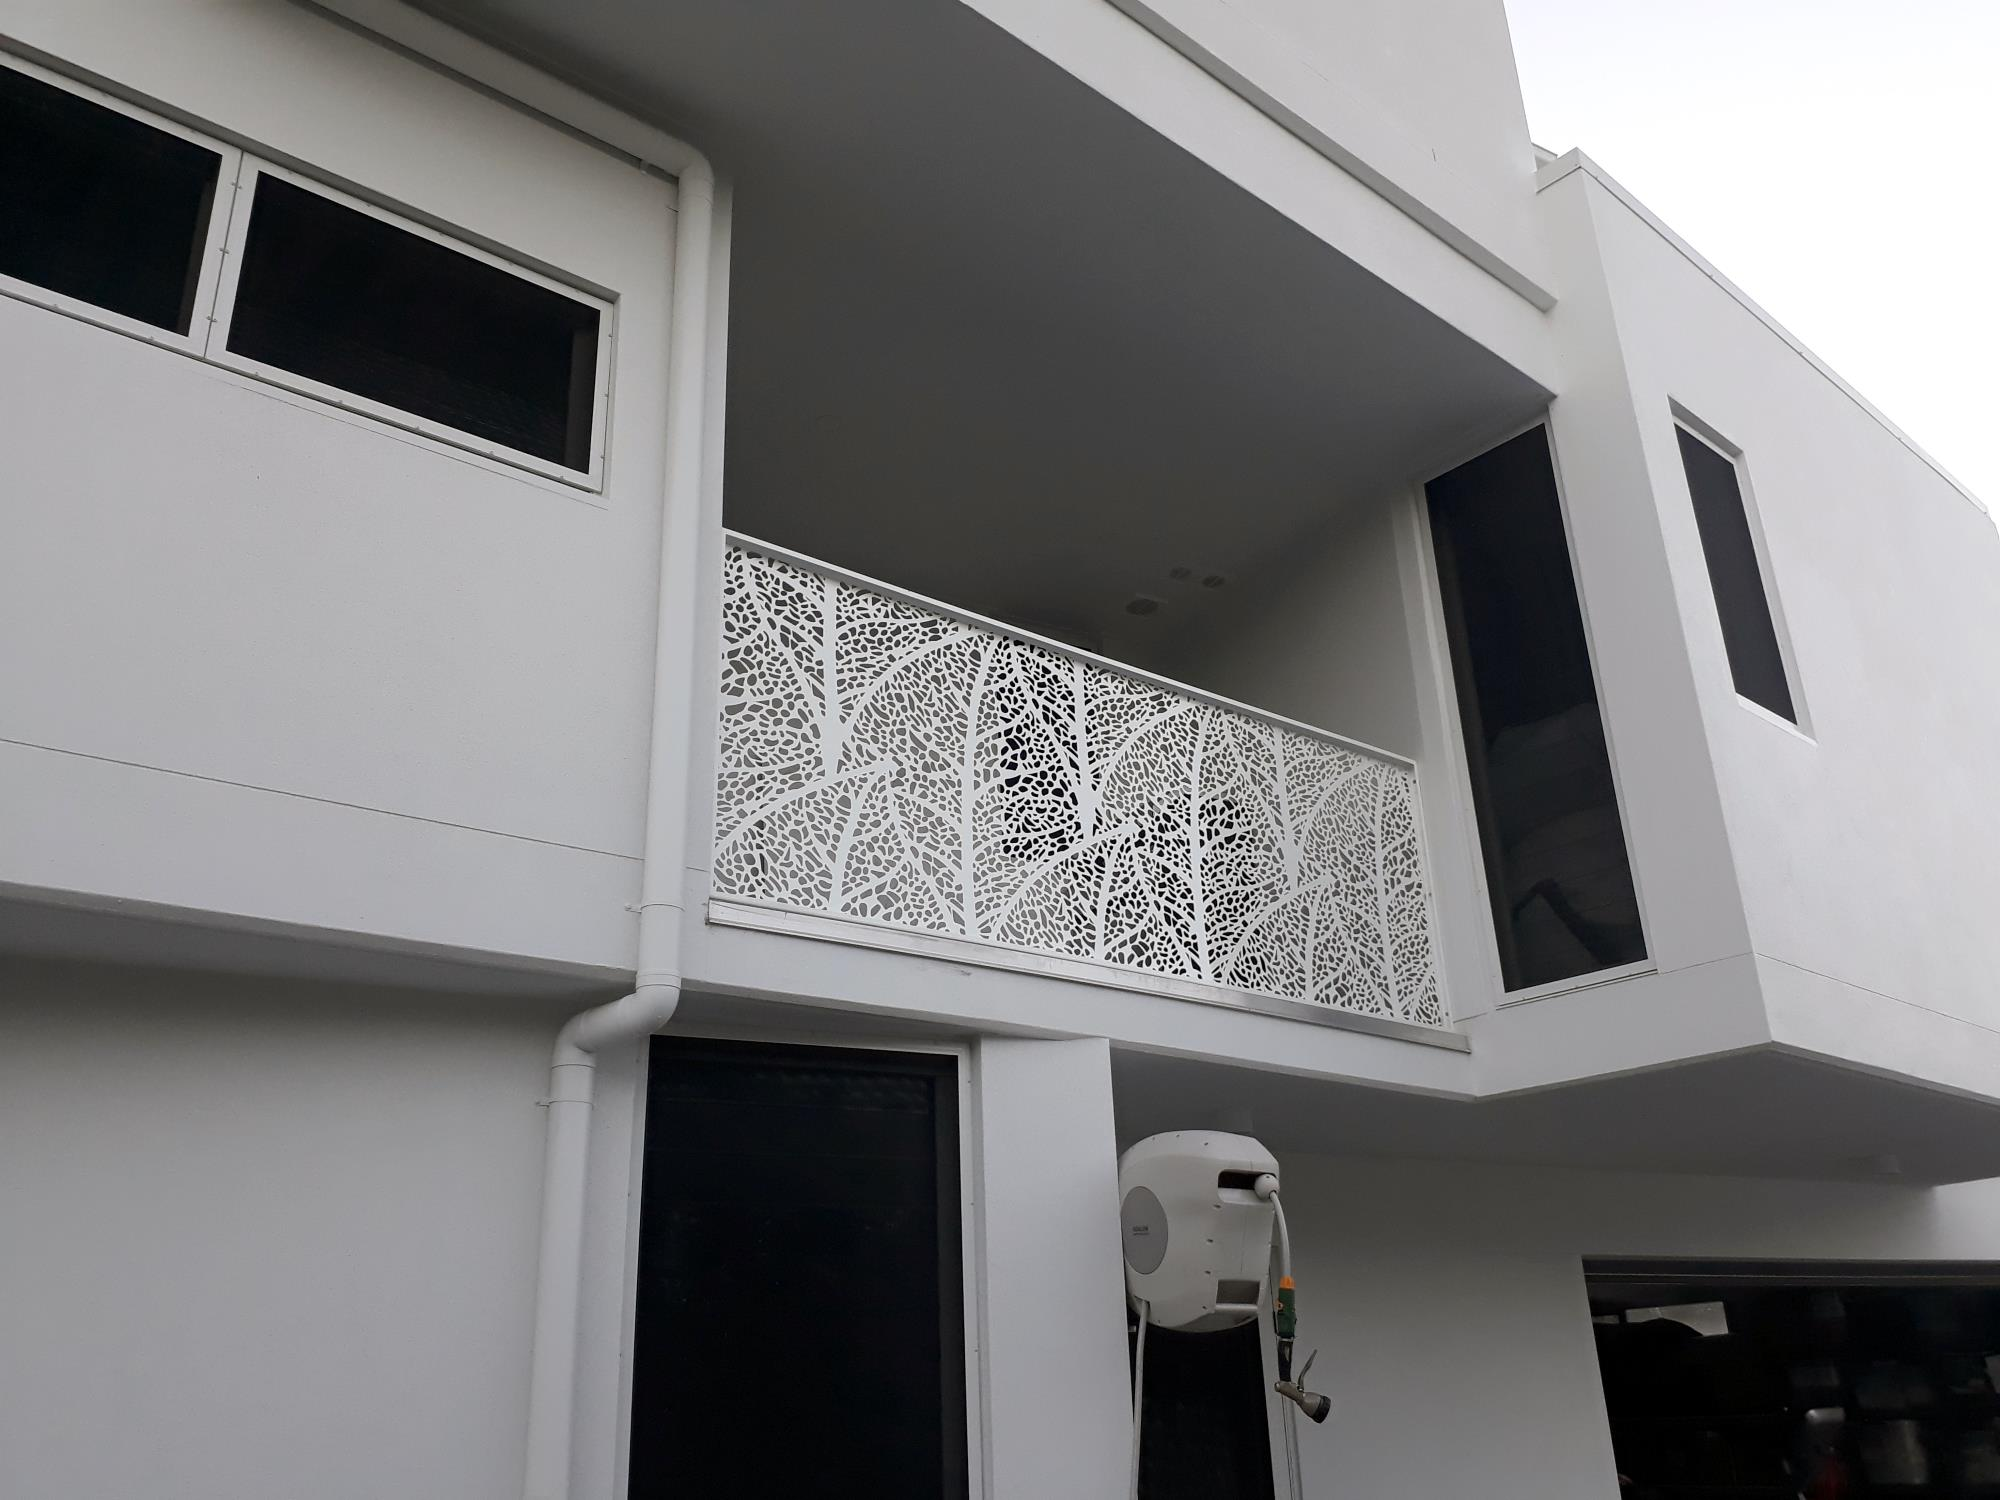 Commercial Laser Cut Decorative Screen Projects